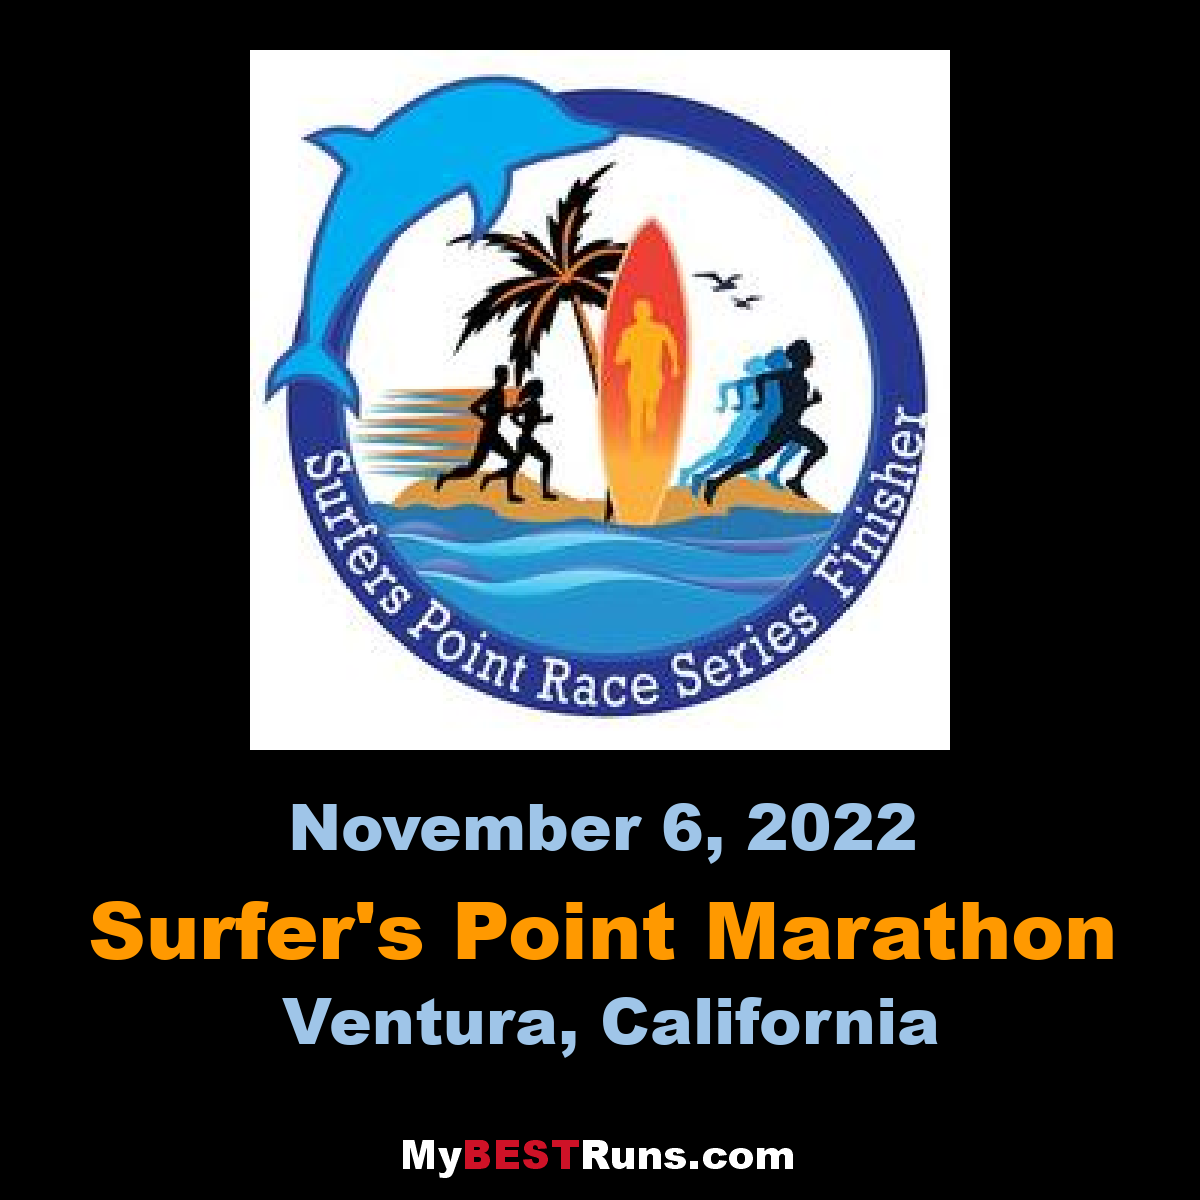 Surfer's Point Marathon